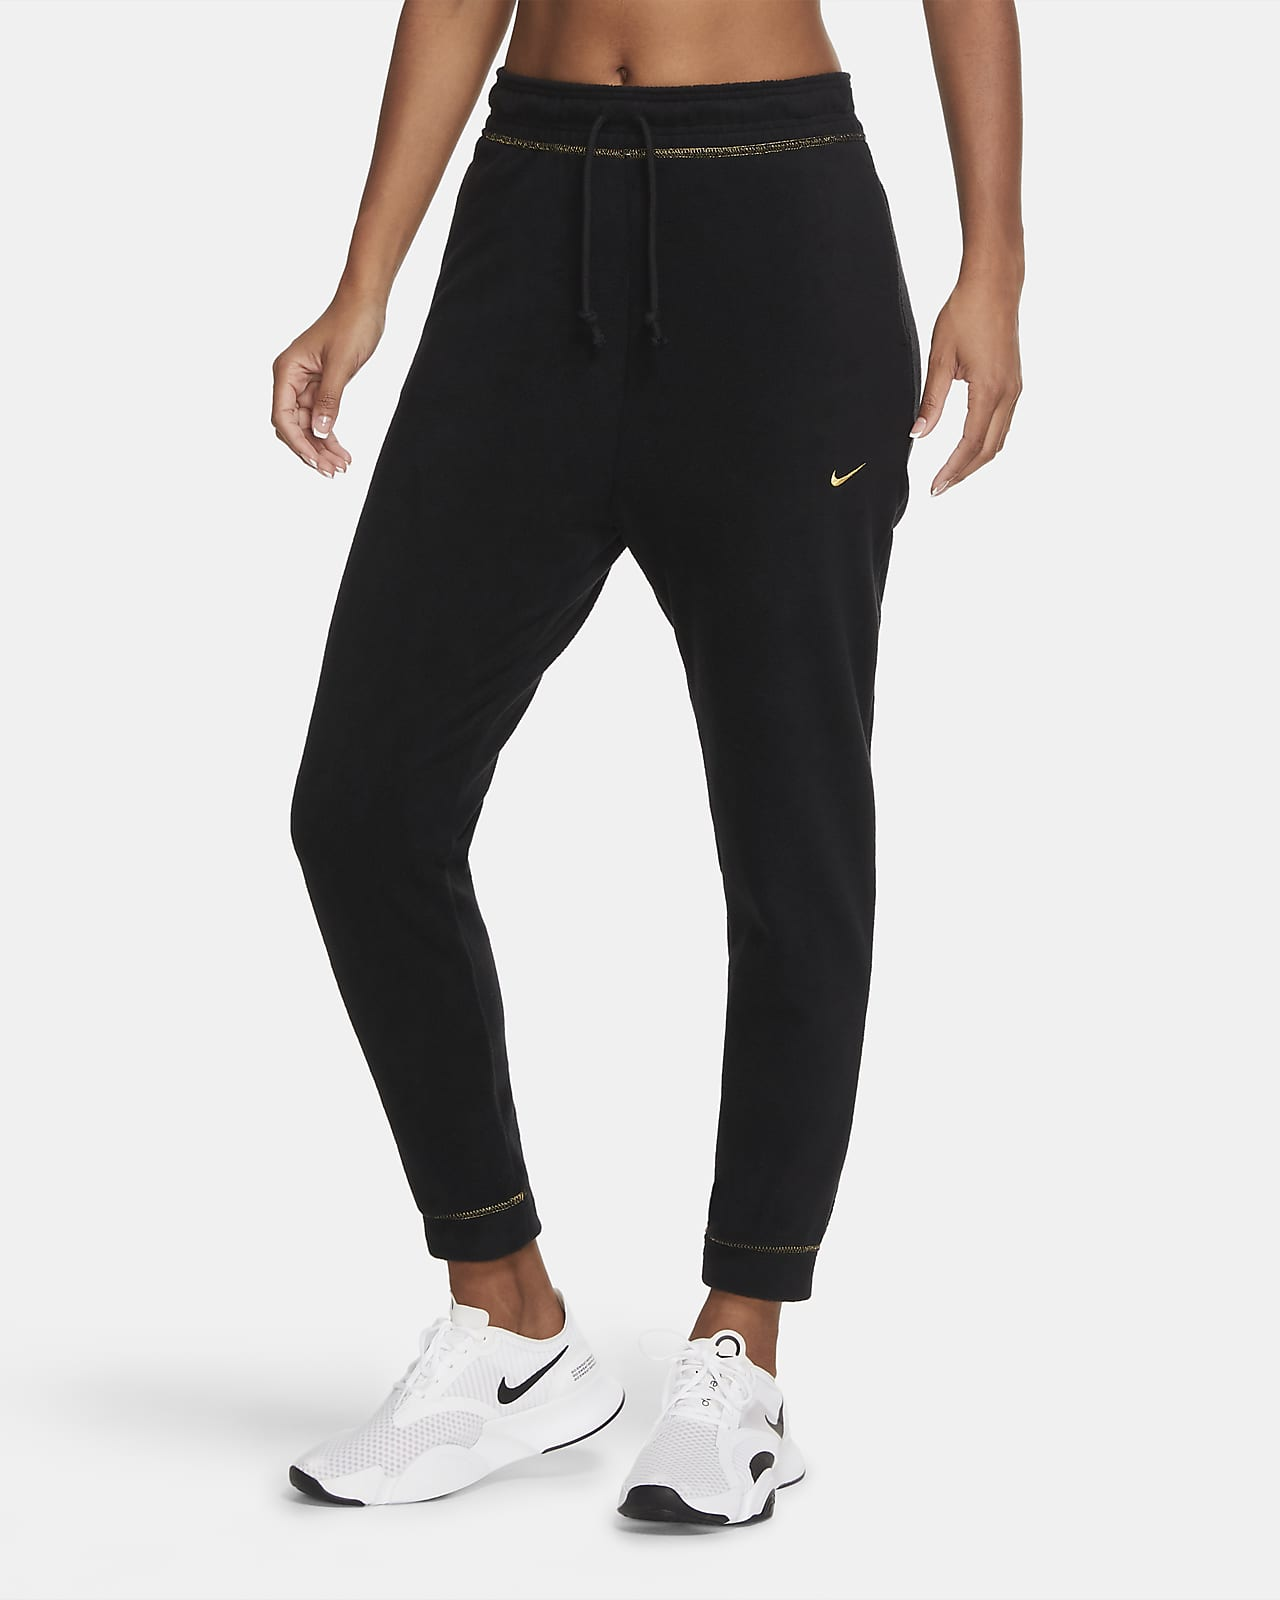 Nike Icon Clash treningsbukse i fleece til dame